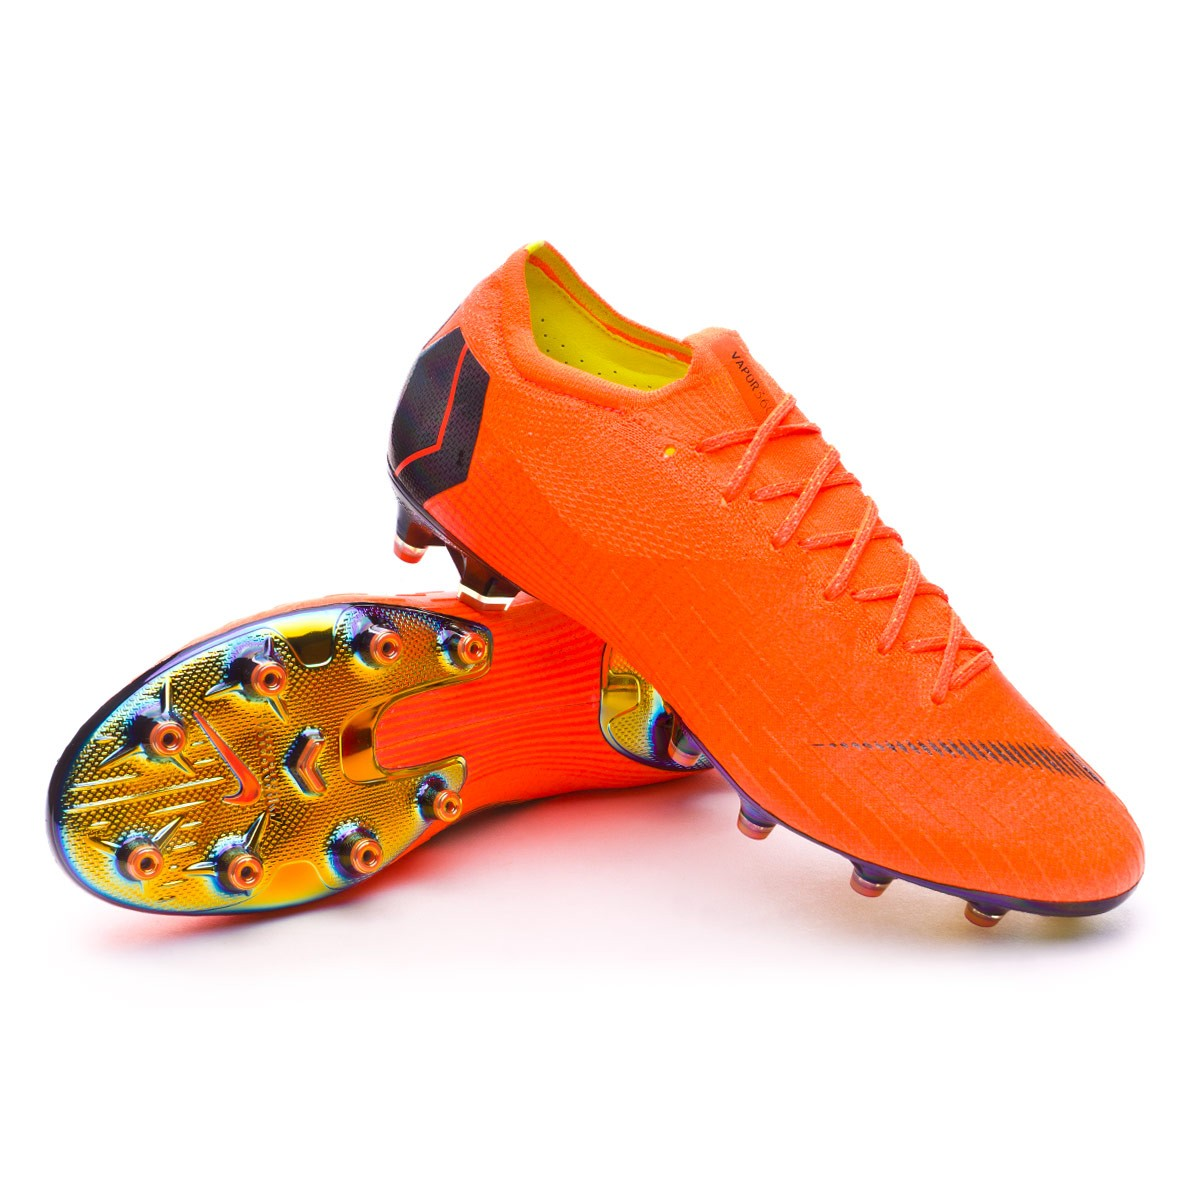 Boot Nike Mercurial Vapor XII Elite AG-Pro Total orange-Blac